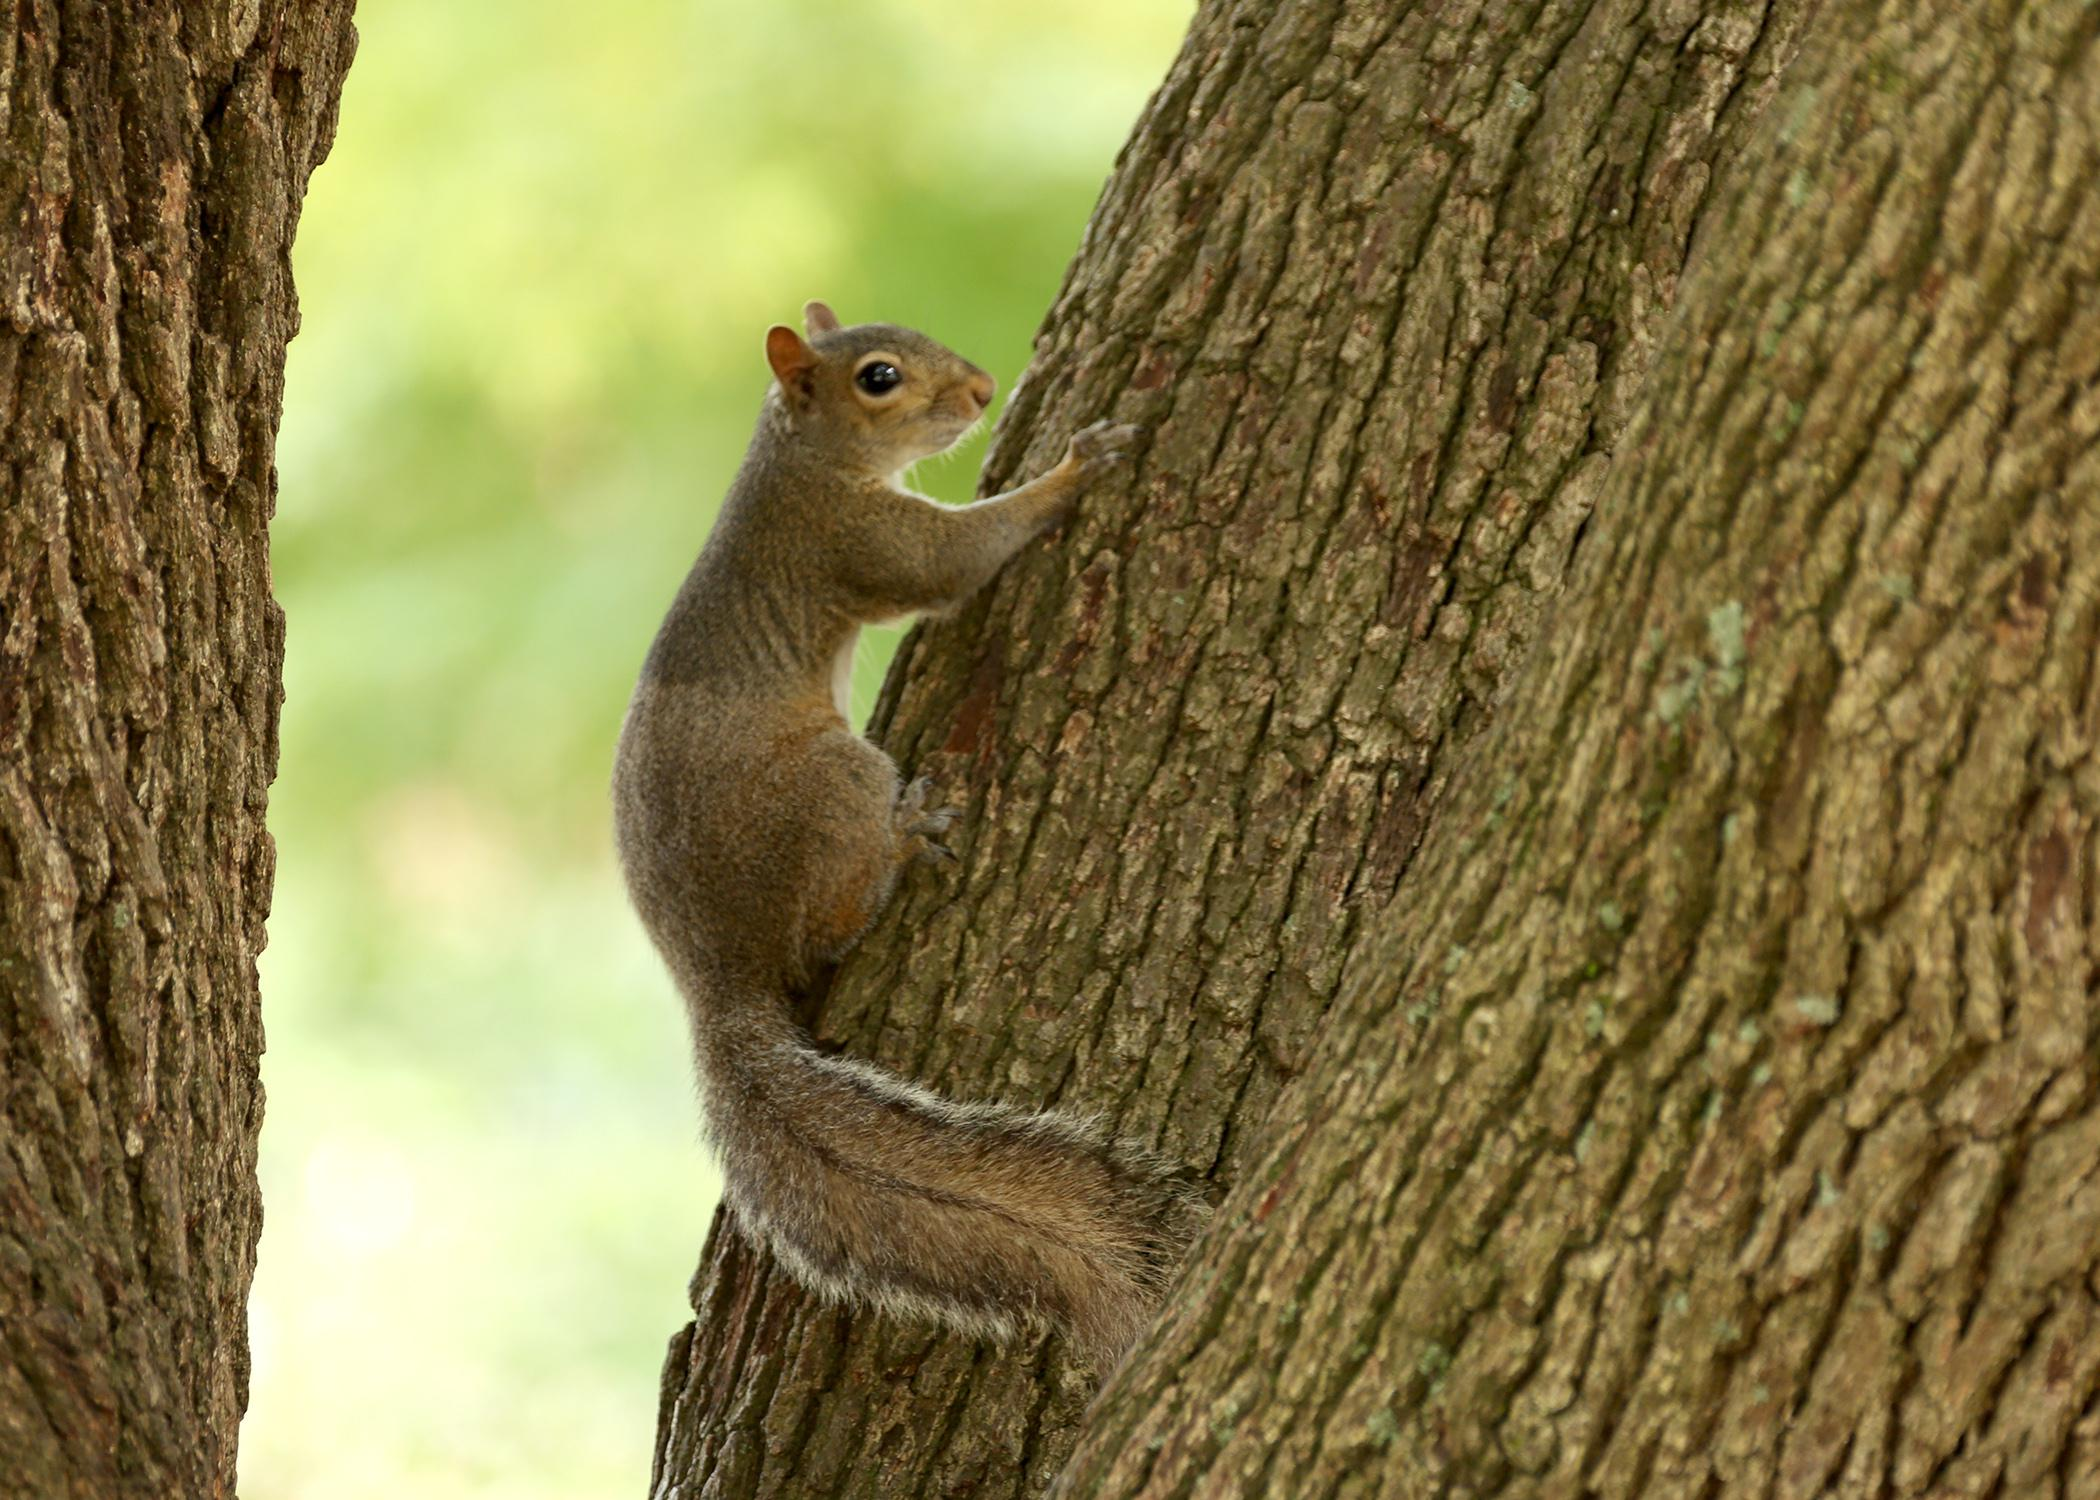 Although squirrels traditionally gather nuts, seeds, acorns, mushrooms, insects and leaves from forested habitats, they also enjoy readily available food from backyard and agricultural habitats, which often causes conflict between squirrels and homeowners. (Photo by MSU Ag Communications/Kat Lawrence)